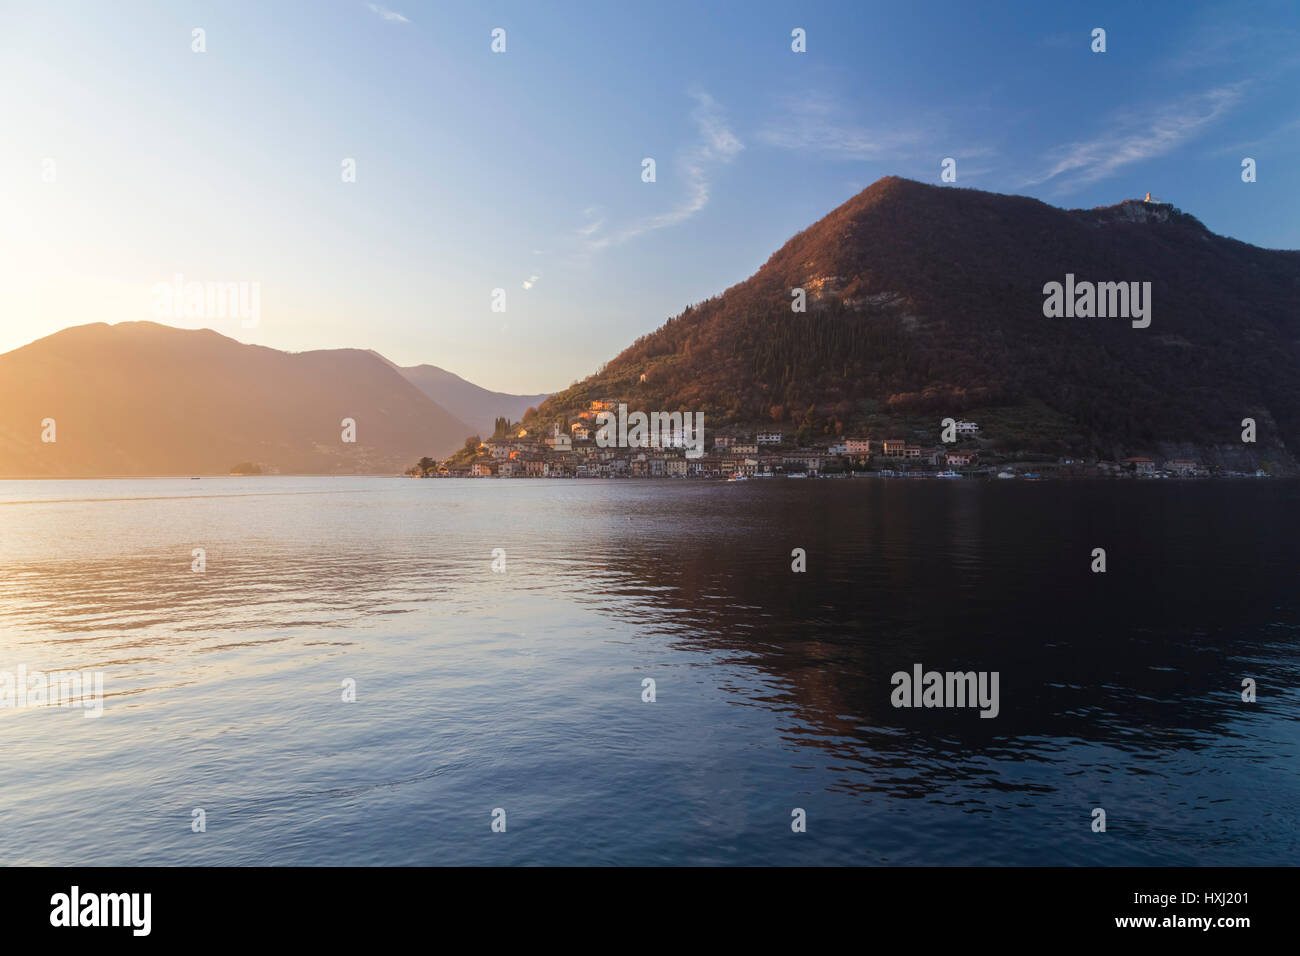 Monte Isola reflection on Lake Iseo during a winter sunset, Brescia Province, Iseo Lake, Lombardy, Italy. Stock Photo